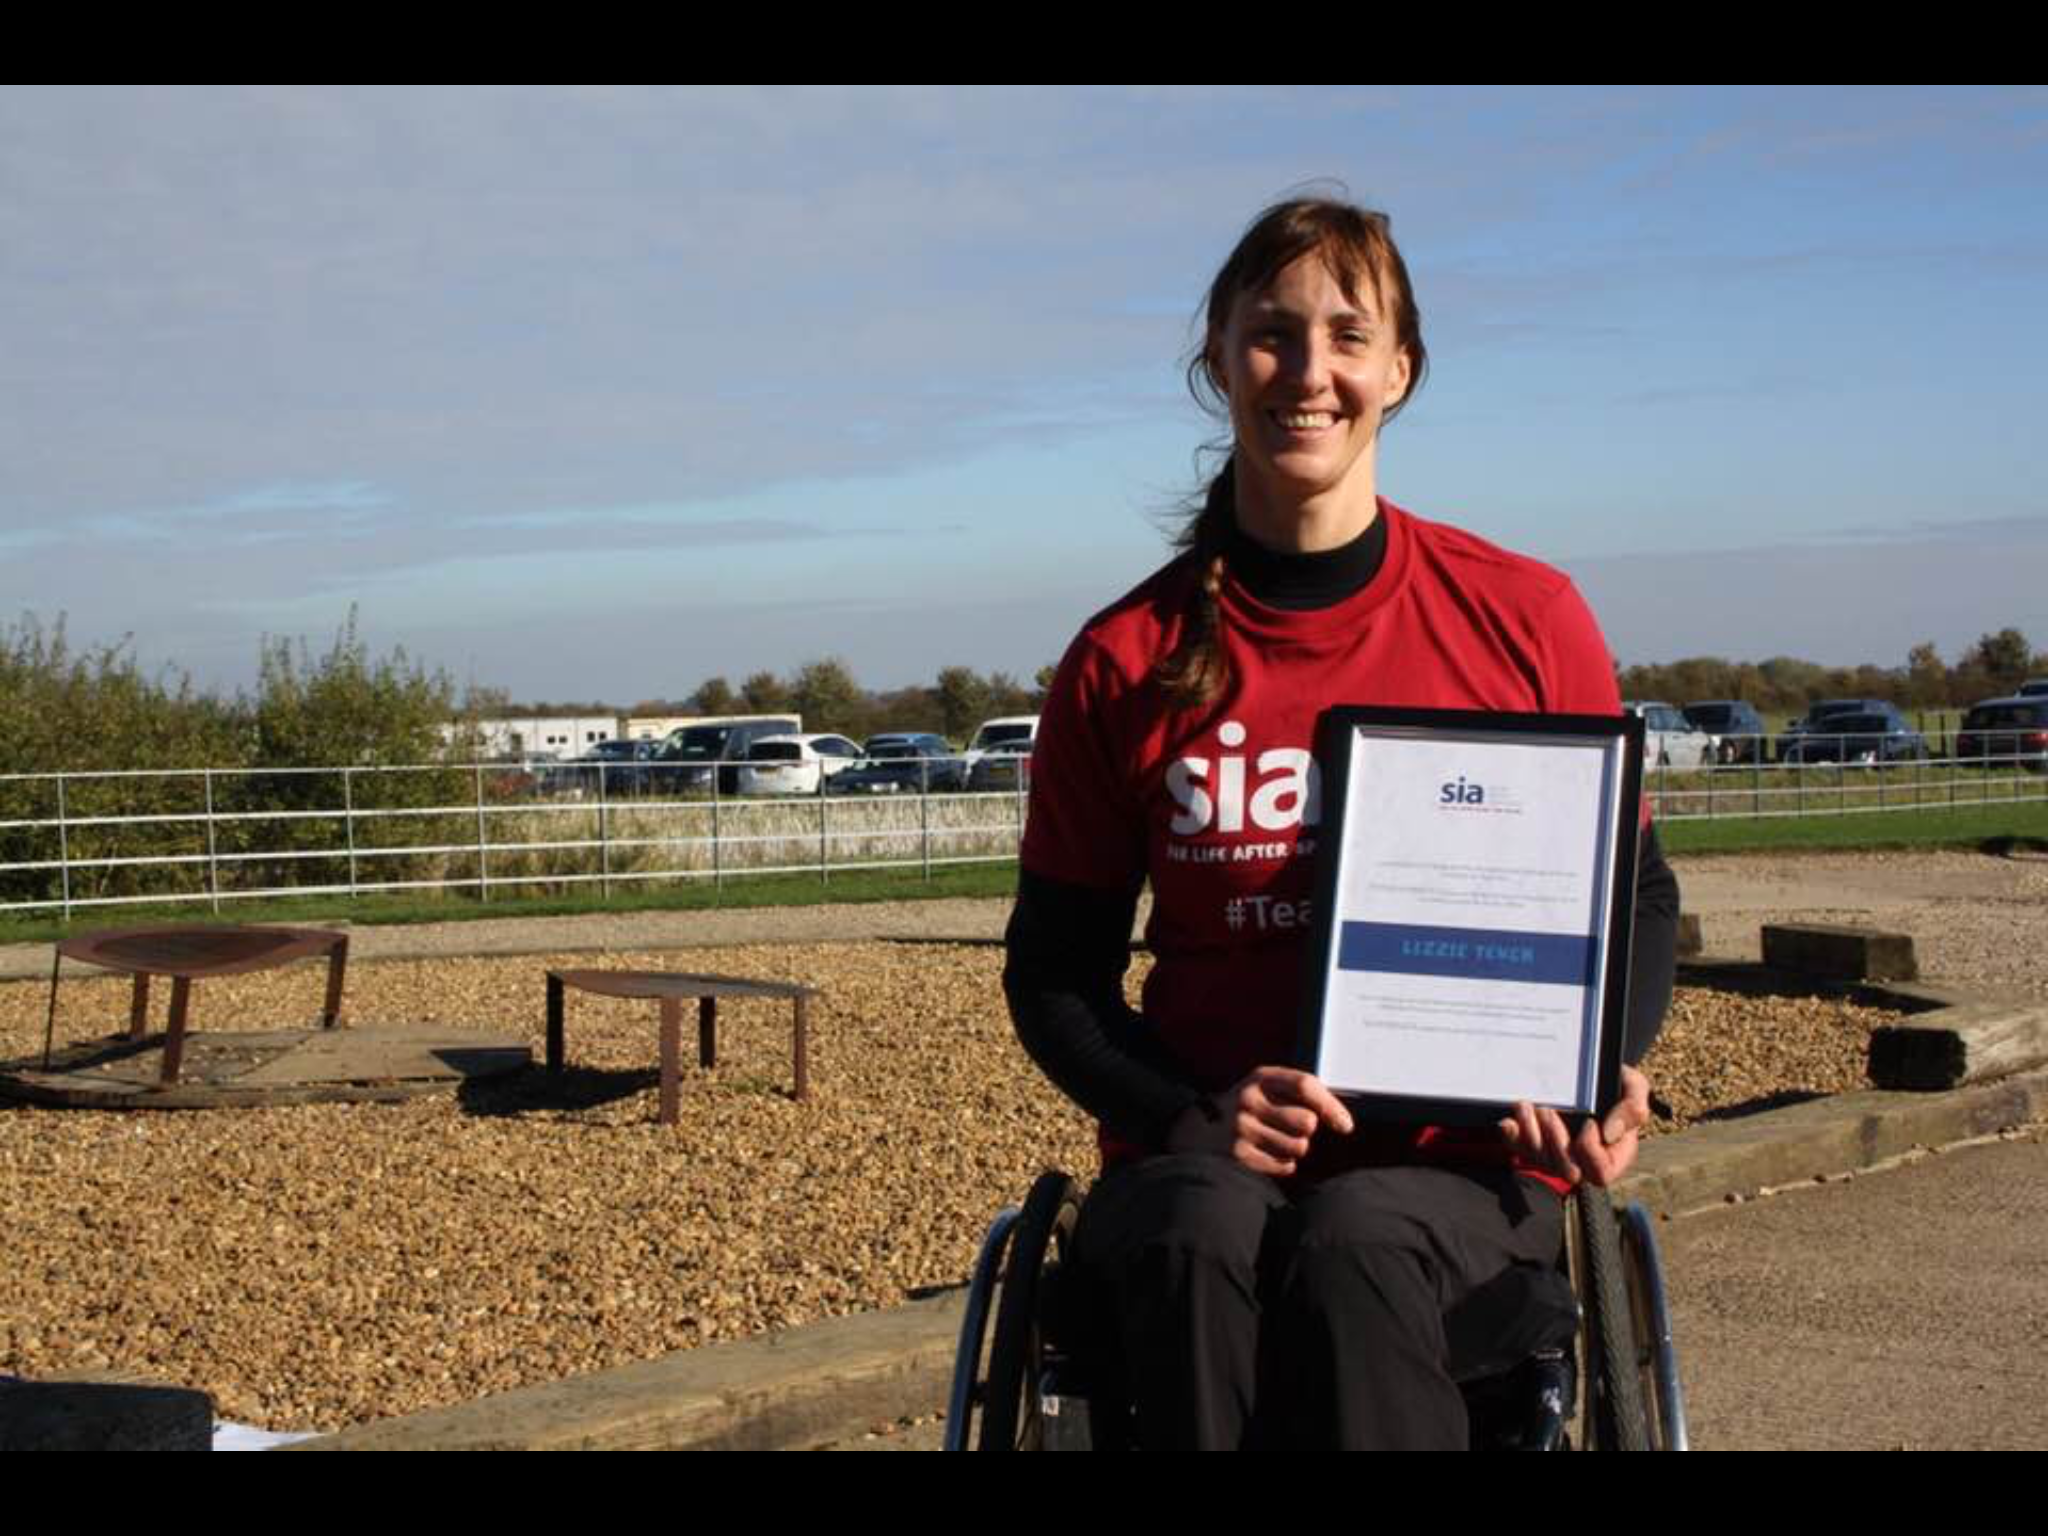 Lizzie - back on the ground, proudly showing off her 'top fundraiser' certificate